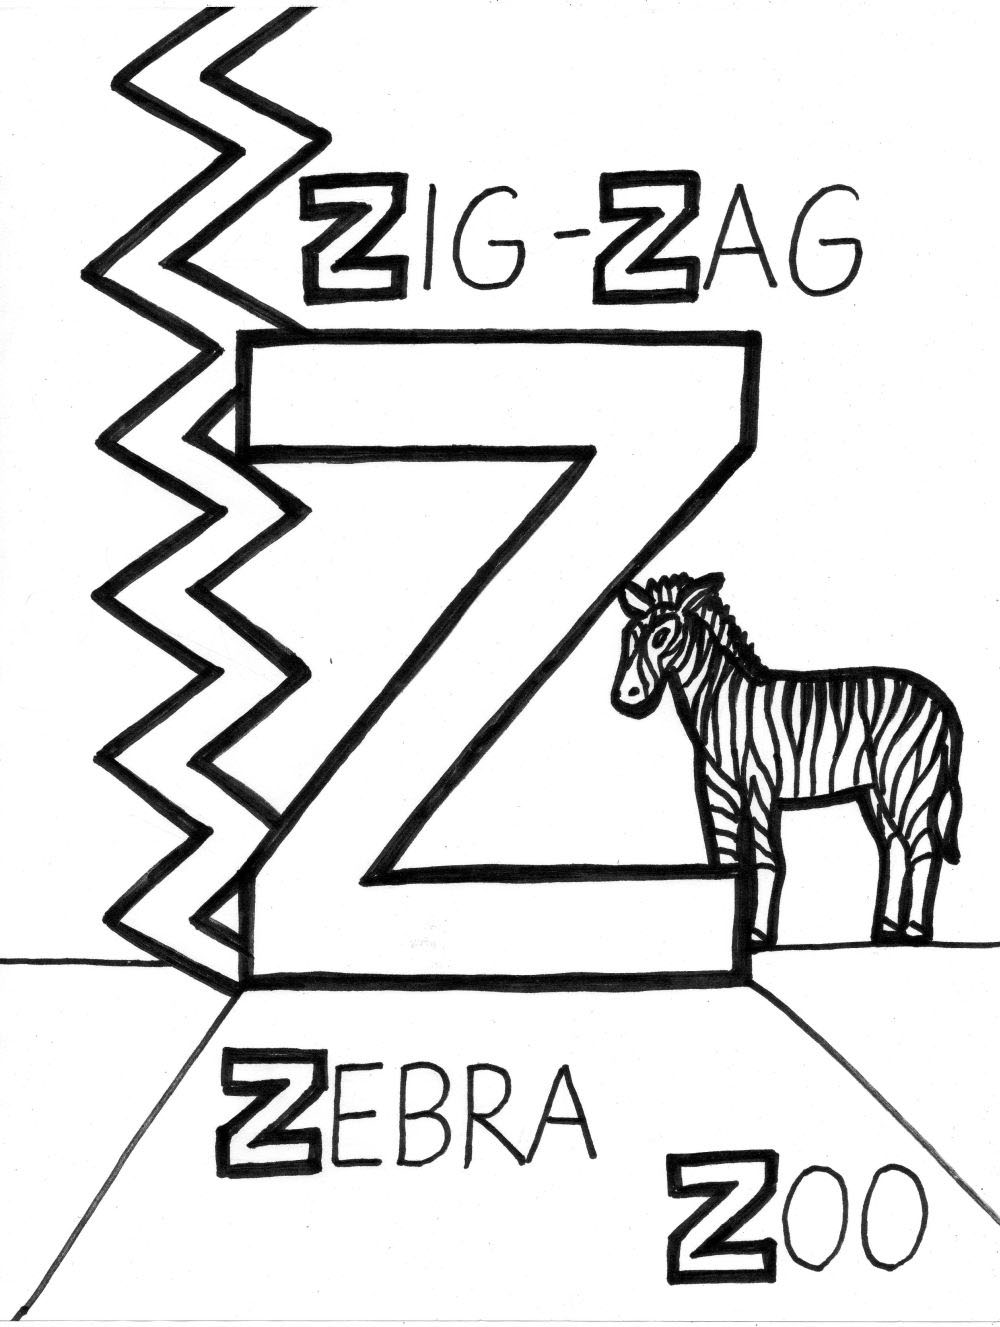 L sound coloring pages - Free Letter Z Coloring Pages To Print For Kids Download Print And Color